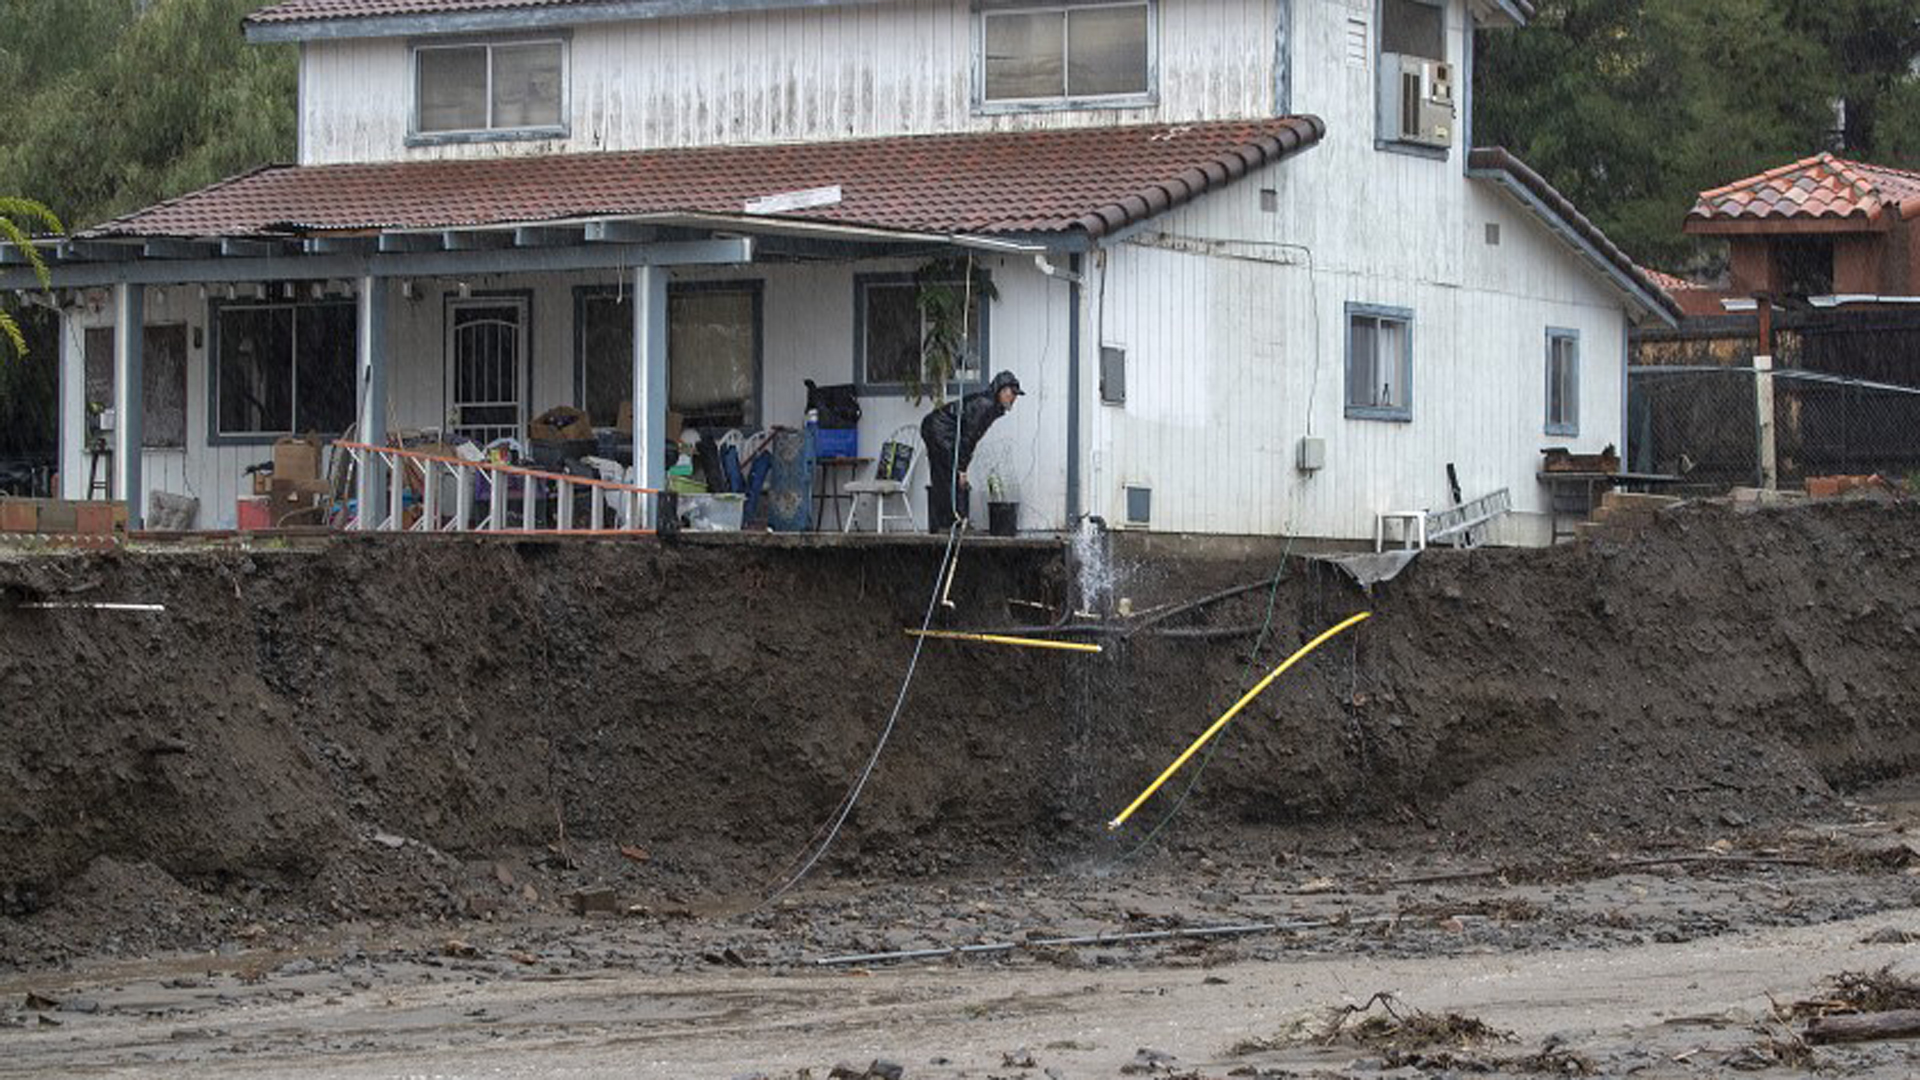 A man peers beyond the porch of his home, which was undermined by floodwater in February 2019 in Lake Elsinore's Leach Canyon.(Credit: Allen J. Schaben / Los Angeles Times)